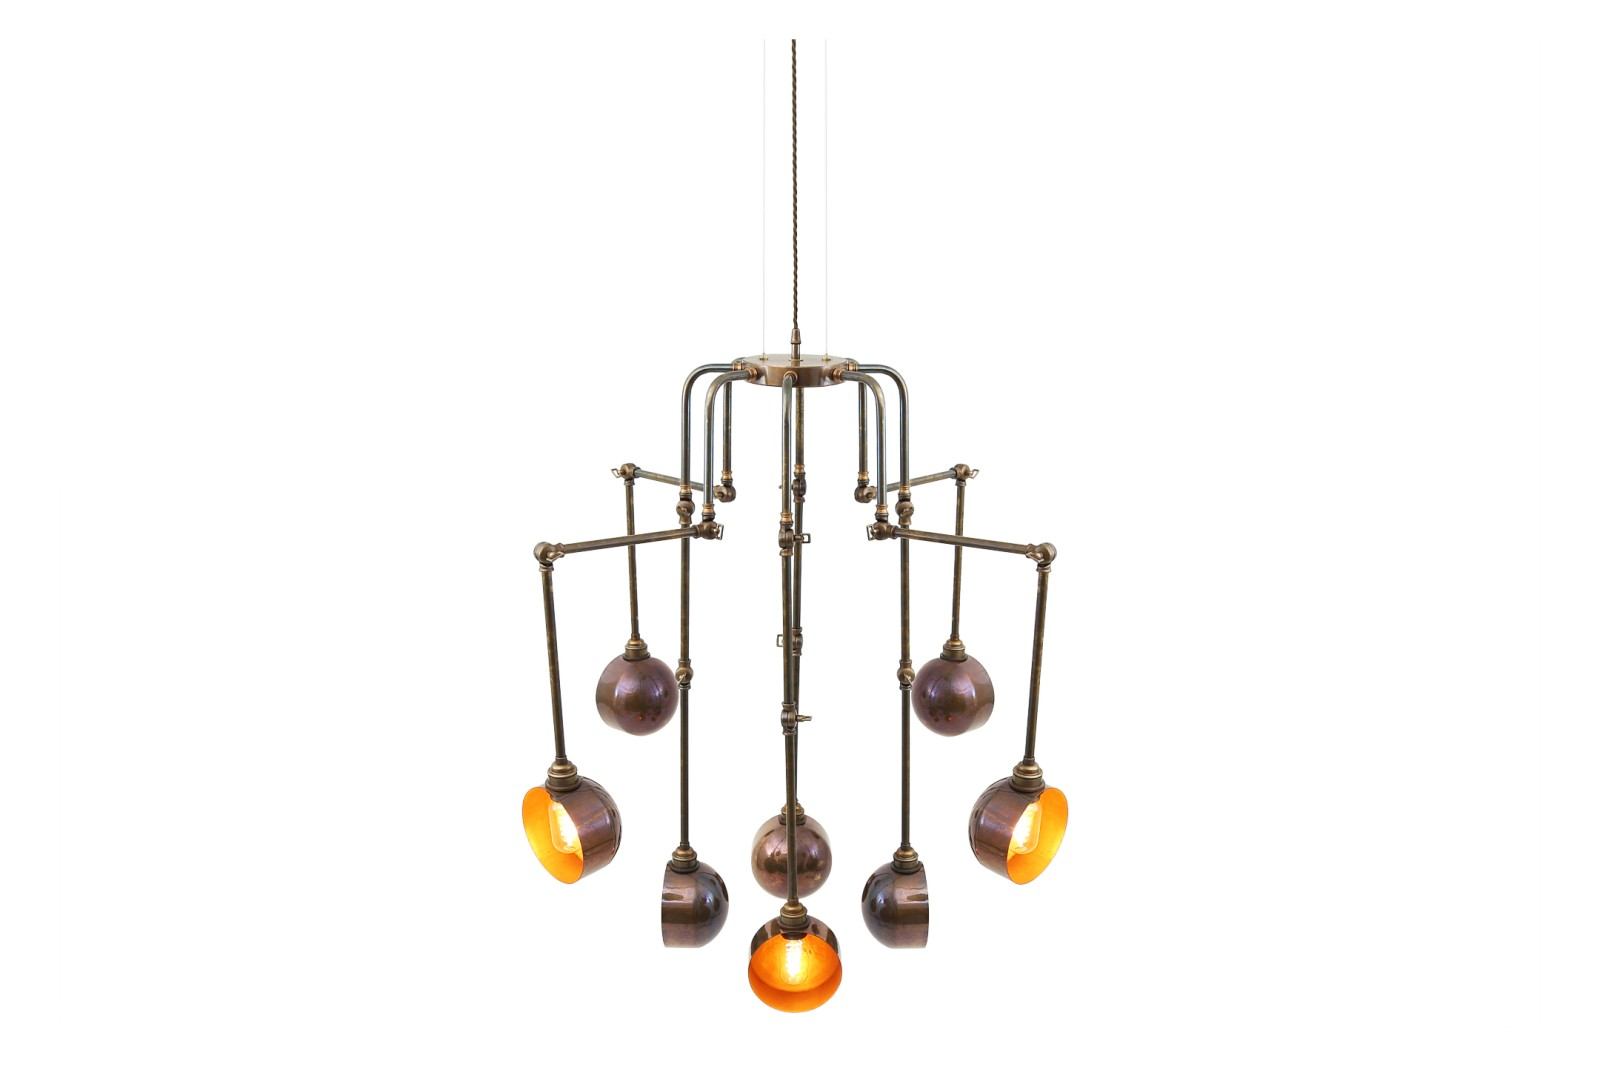 San Jose 8 Arm Chandelier Antique Brass